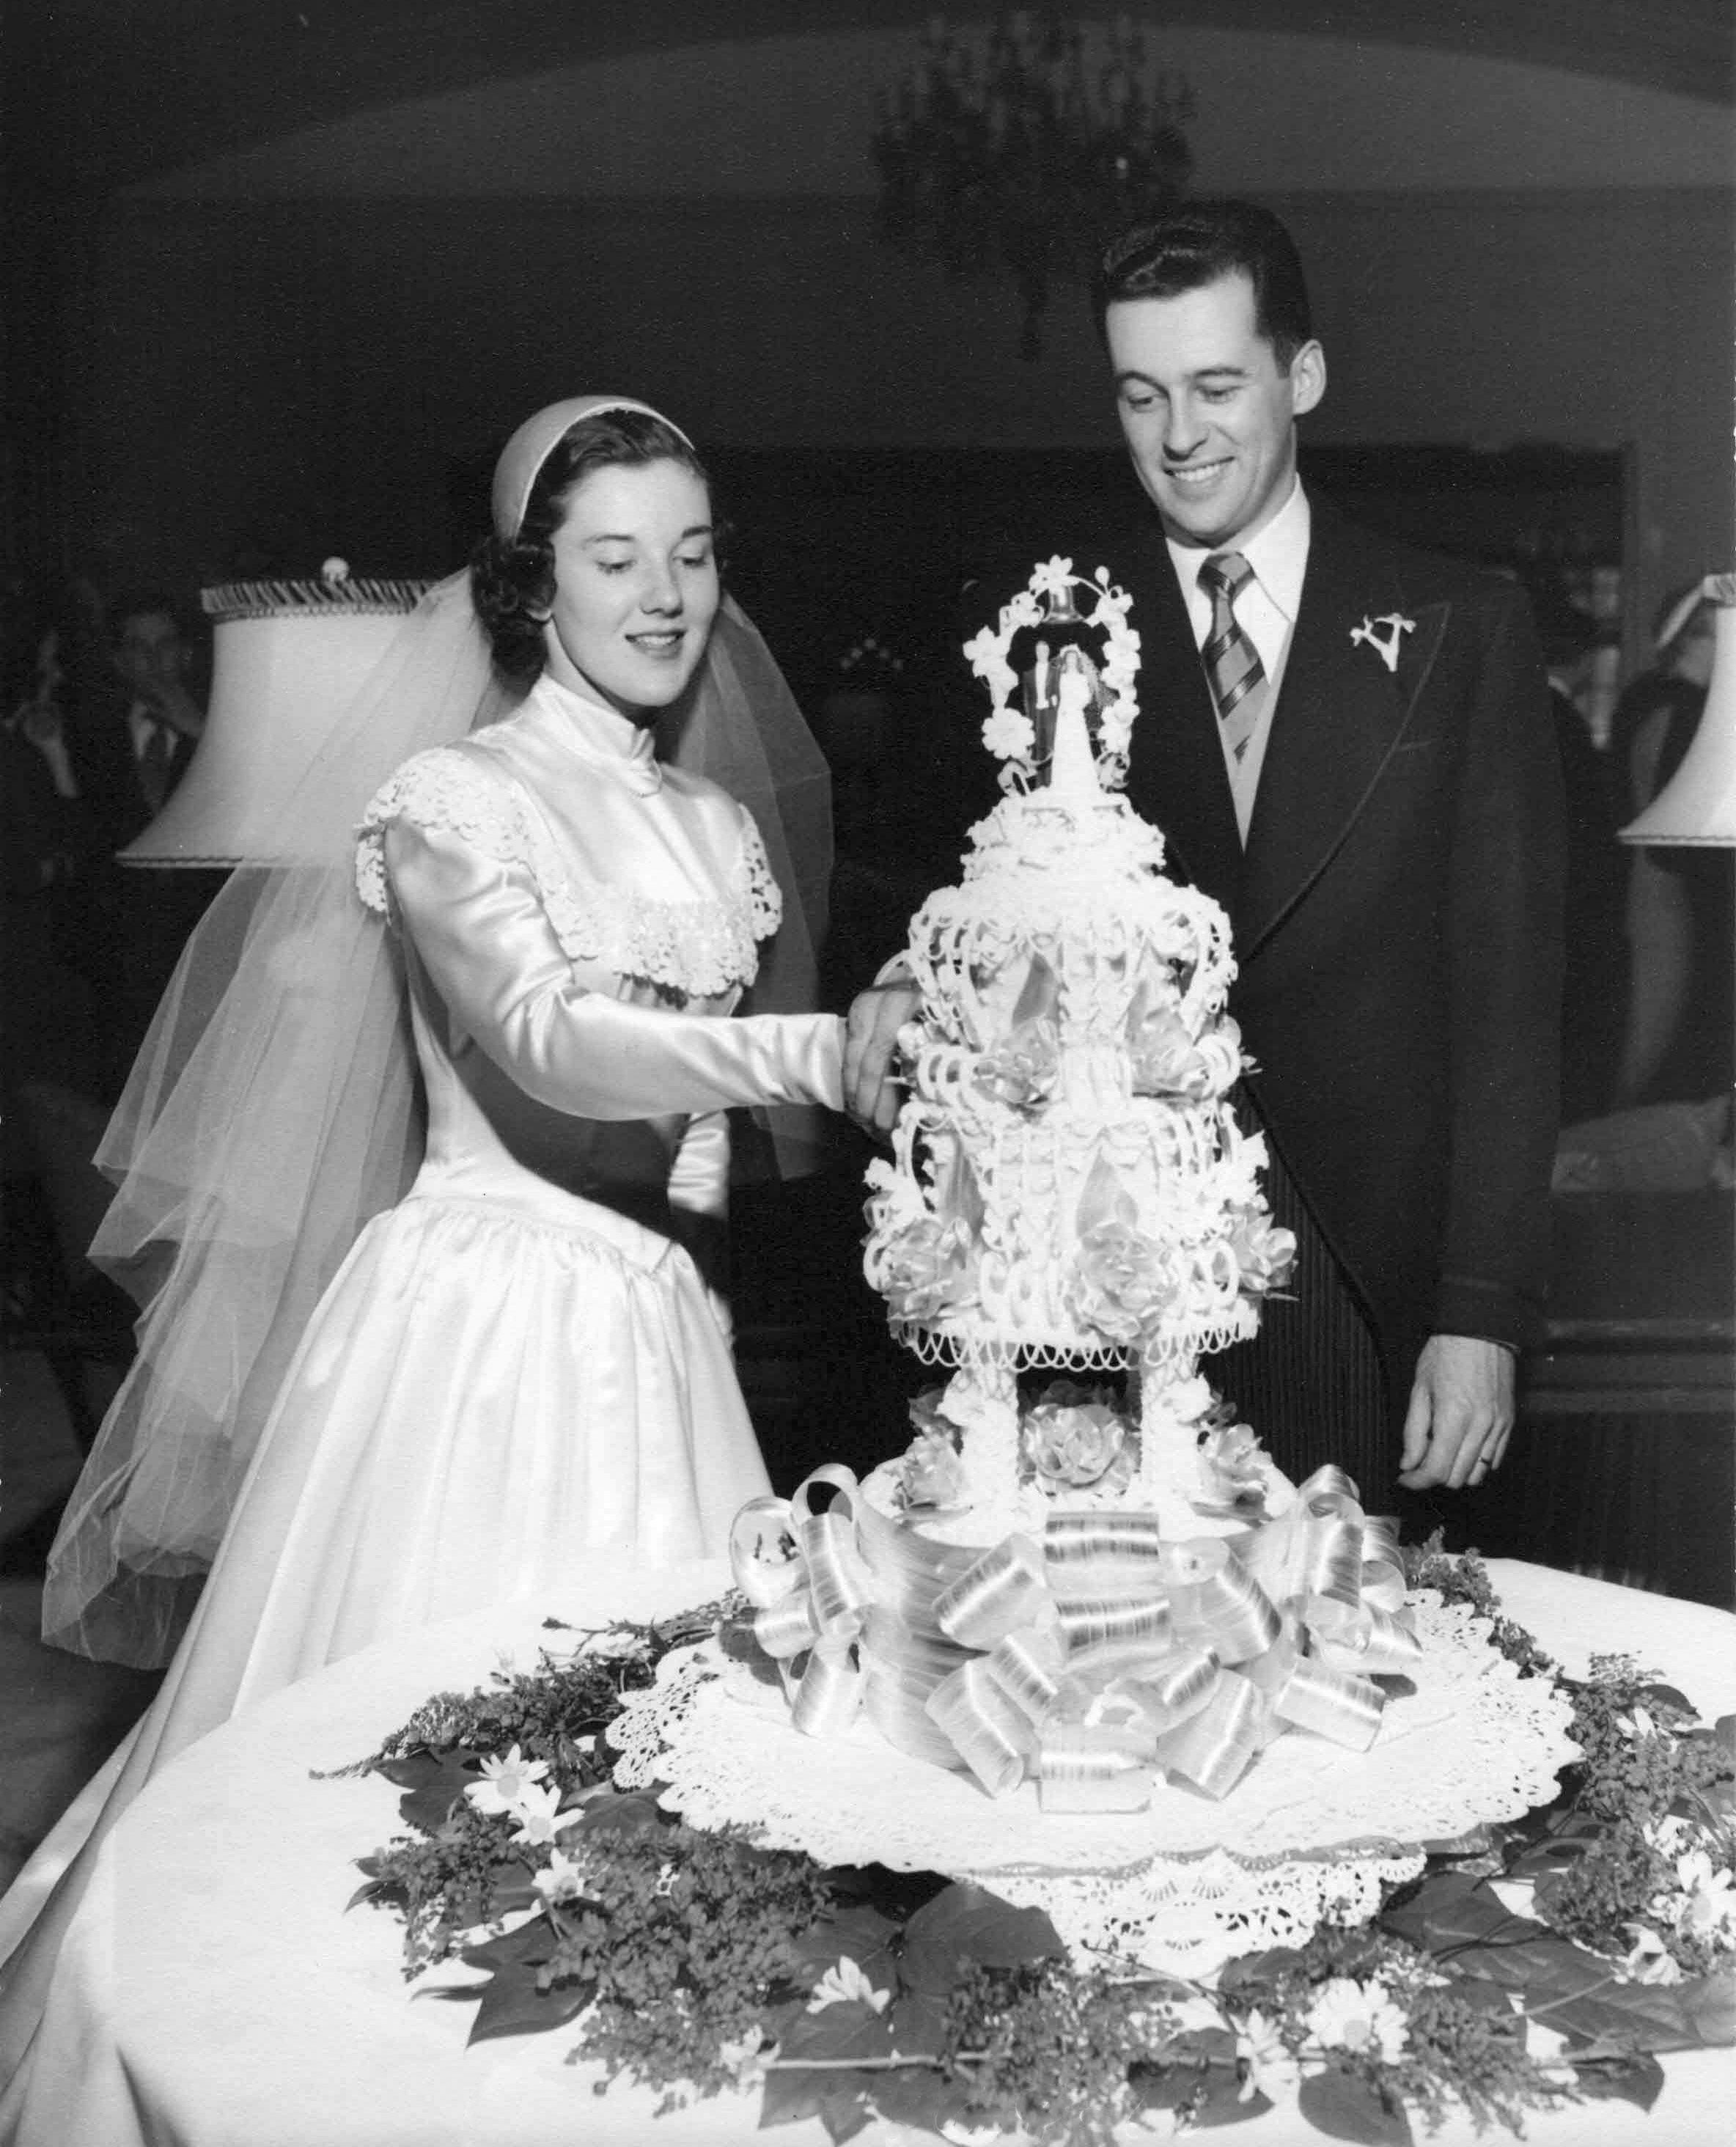 My Grandparents' Wedding, 1950, Detroit MI